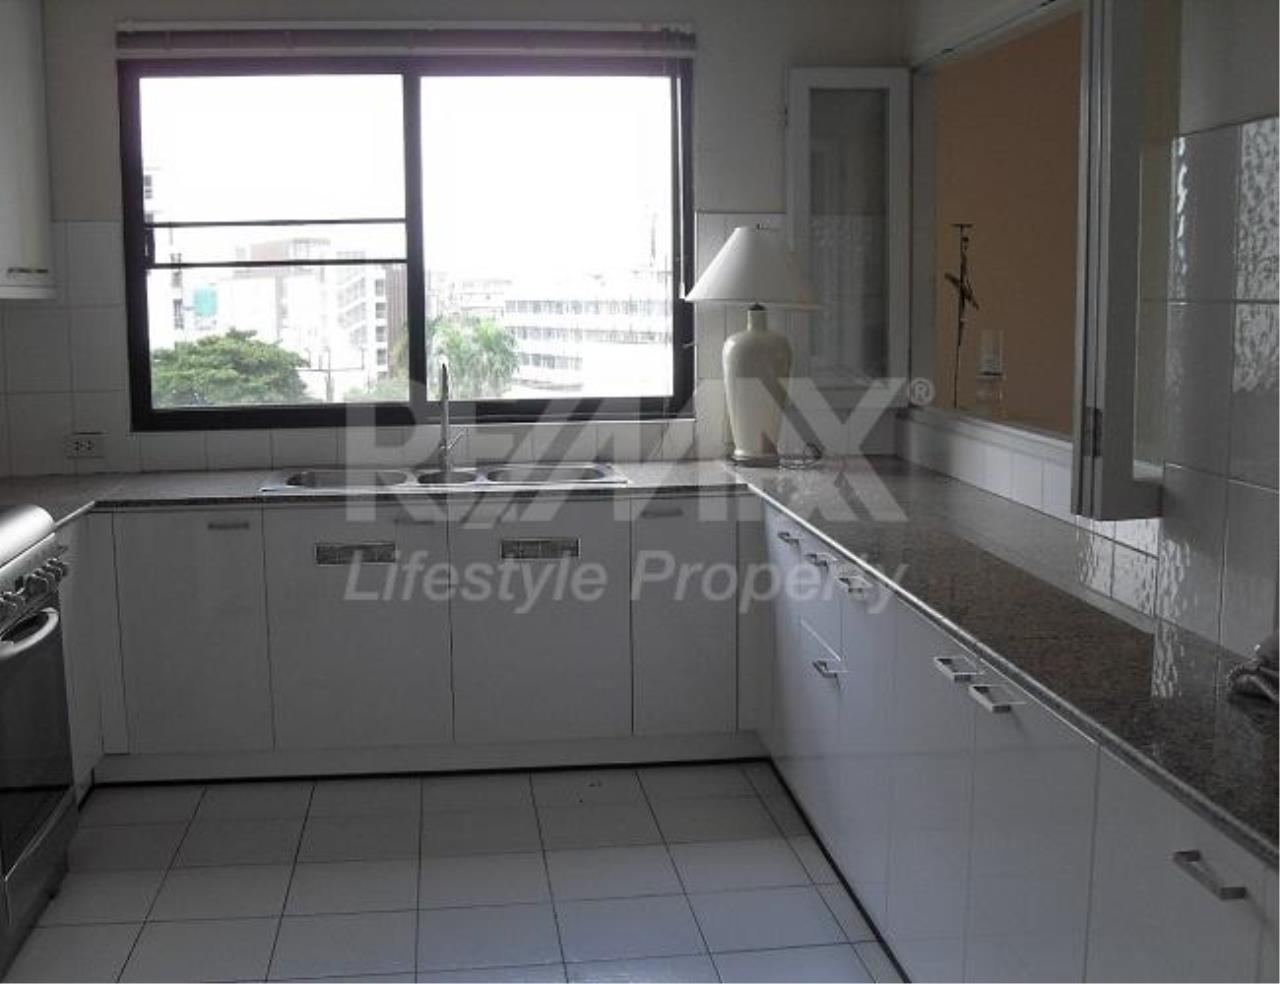 RE/MAX LifeStyle Property Agency's Sathorn Crest 6